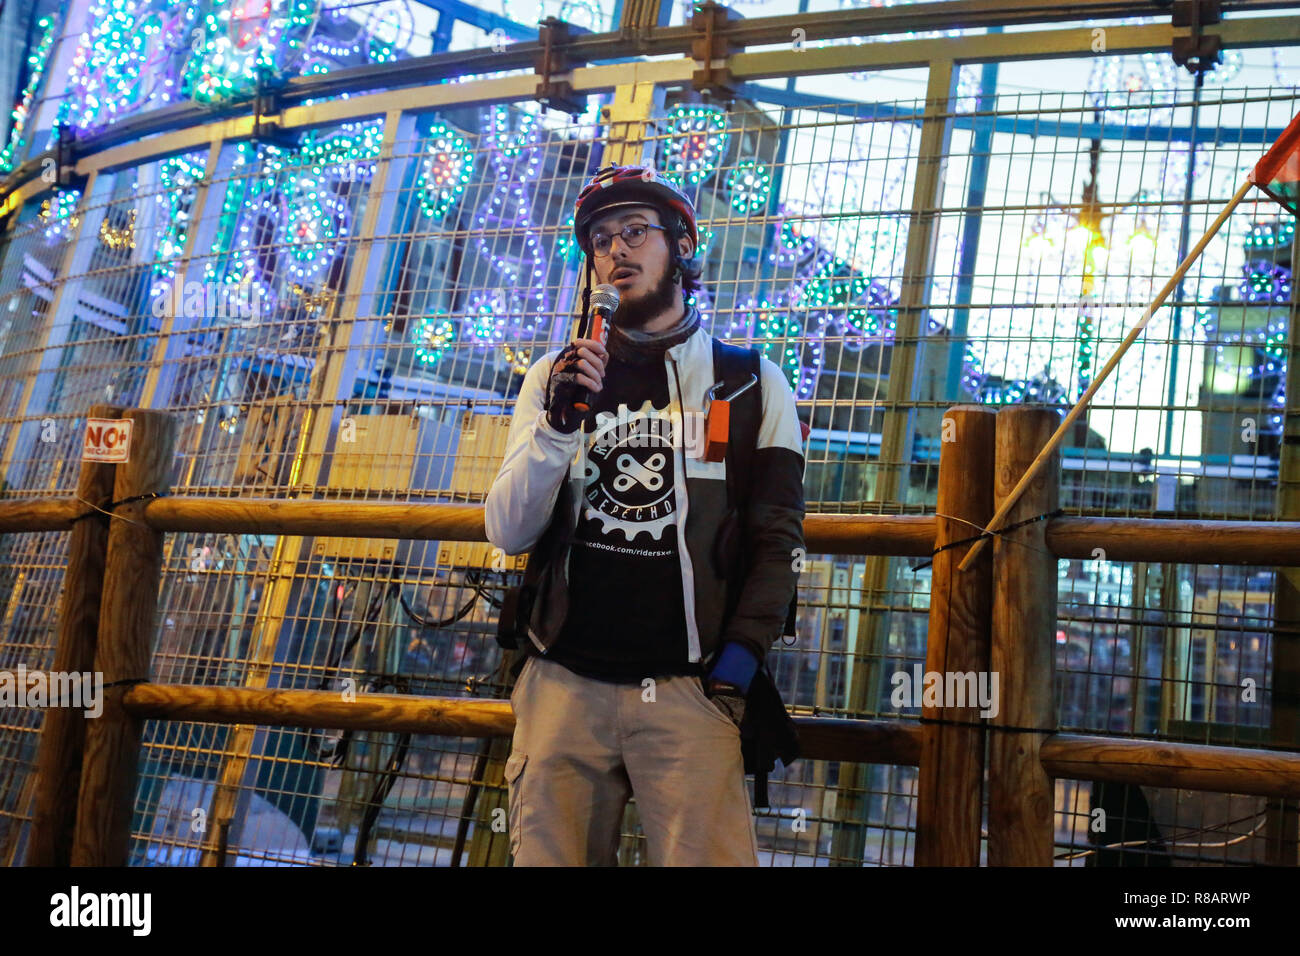 Madrid, Spain. 14th Dec, 2018. Representative of the ''Riders Madrid'', affected by the false self-employed companies such as Deliveroo, Glovo or JustEat seen explaining their situation during the protest.Workers from various active strikes such as Carrefour, Inditex, Amazon or teleoperators in Spain and CGT (General Confederation of Labor) unionists protest against the new forms of labor exploitation such as garbage contracts, false self-employment, non-compliance with labor rights young people, etc. Credit: Lito Lizana/SOPA Images/ZUMA Wire/Alamy Live News - Stock Image